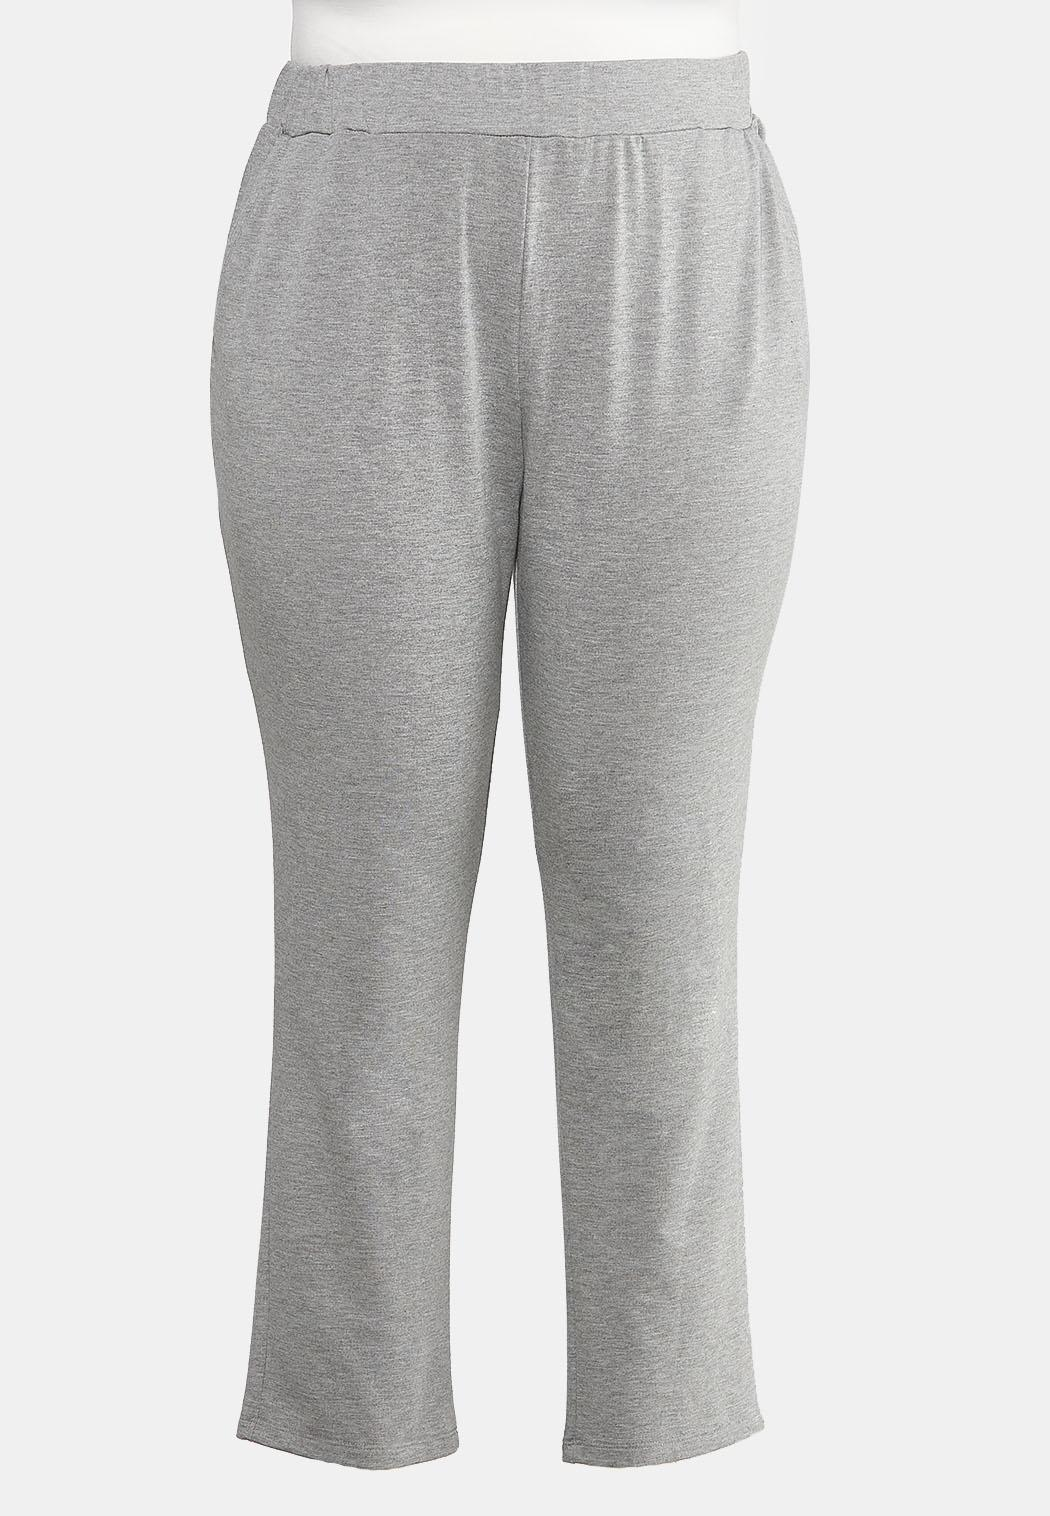 Plus Size Gray Pull-On Pants